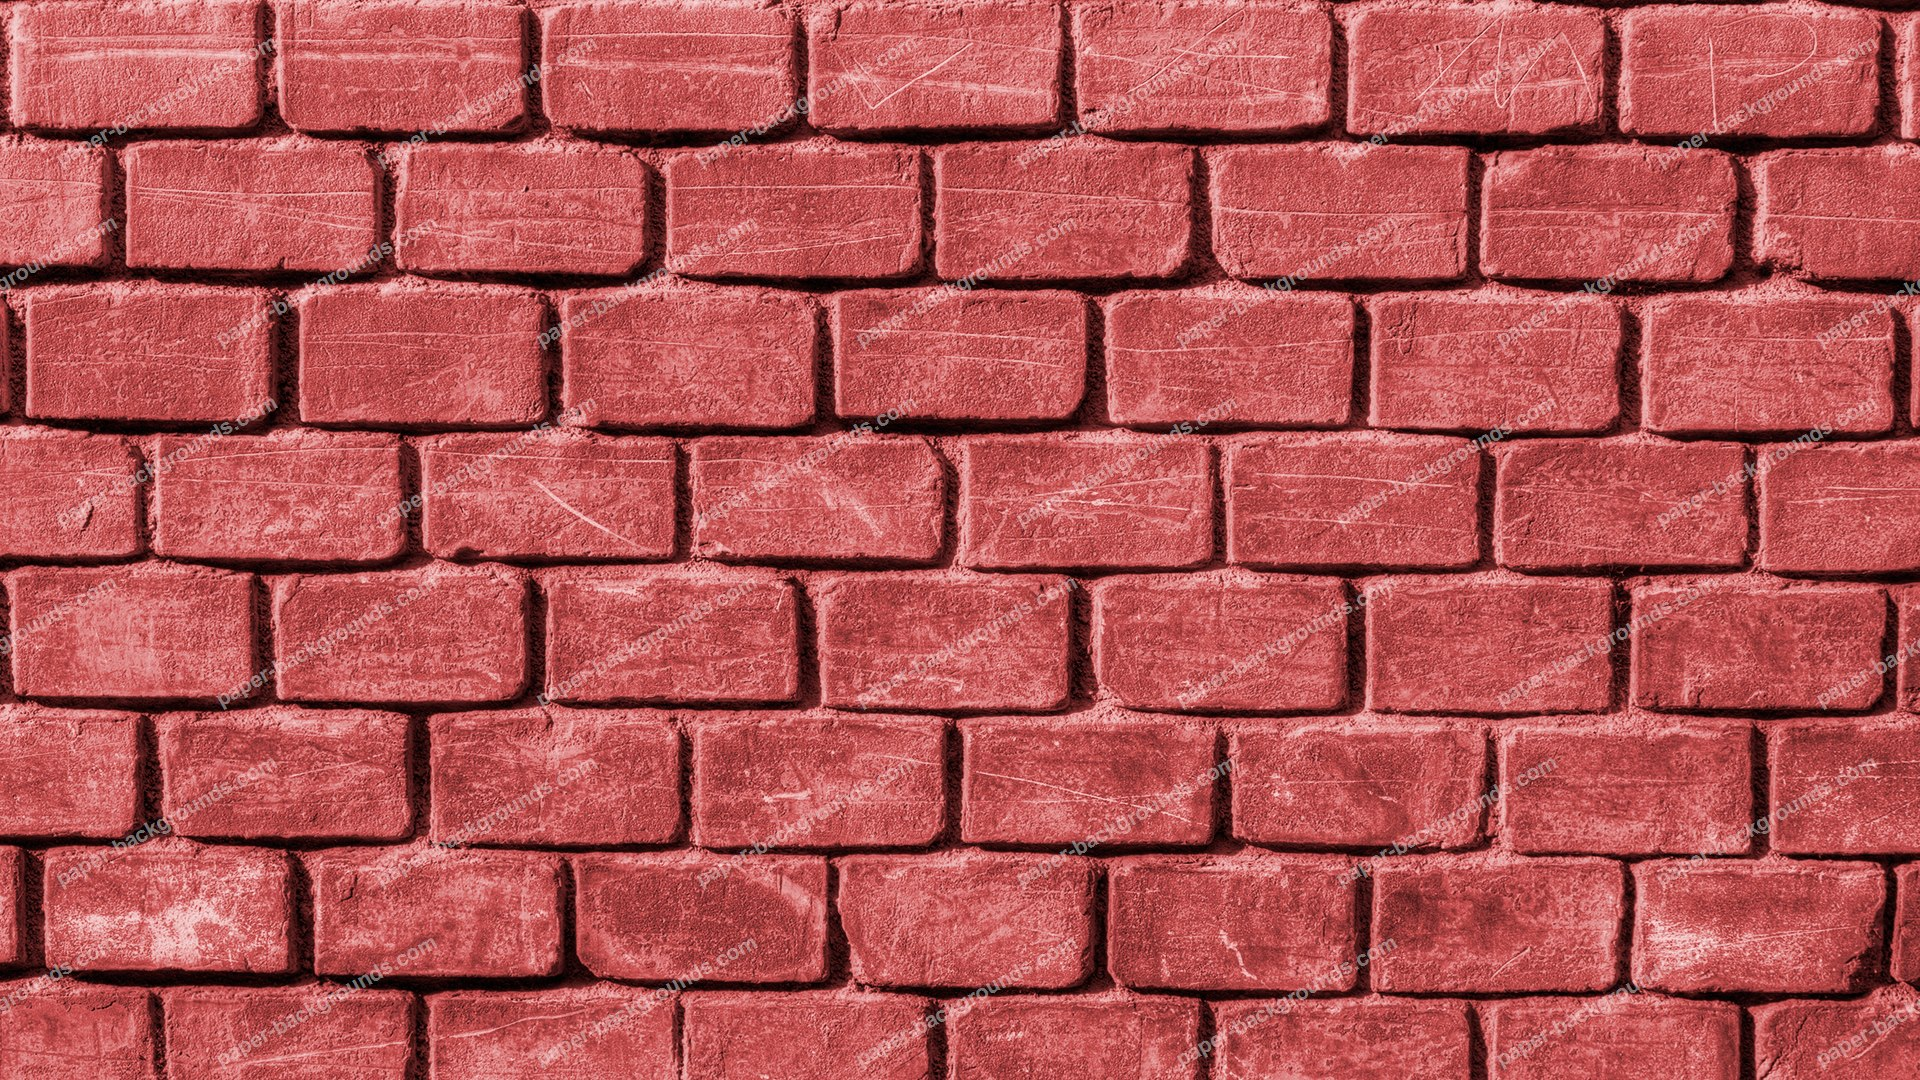 Red Rugged Brick Wall HD 1920 x 1080p